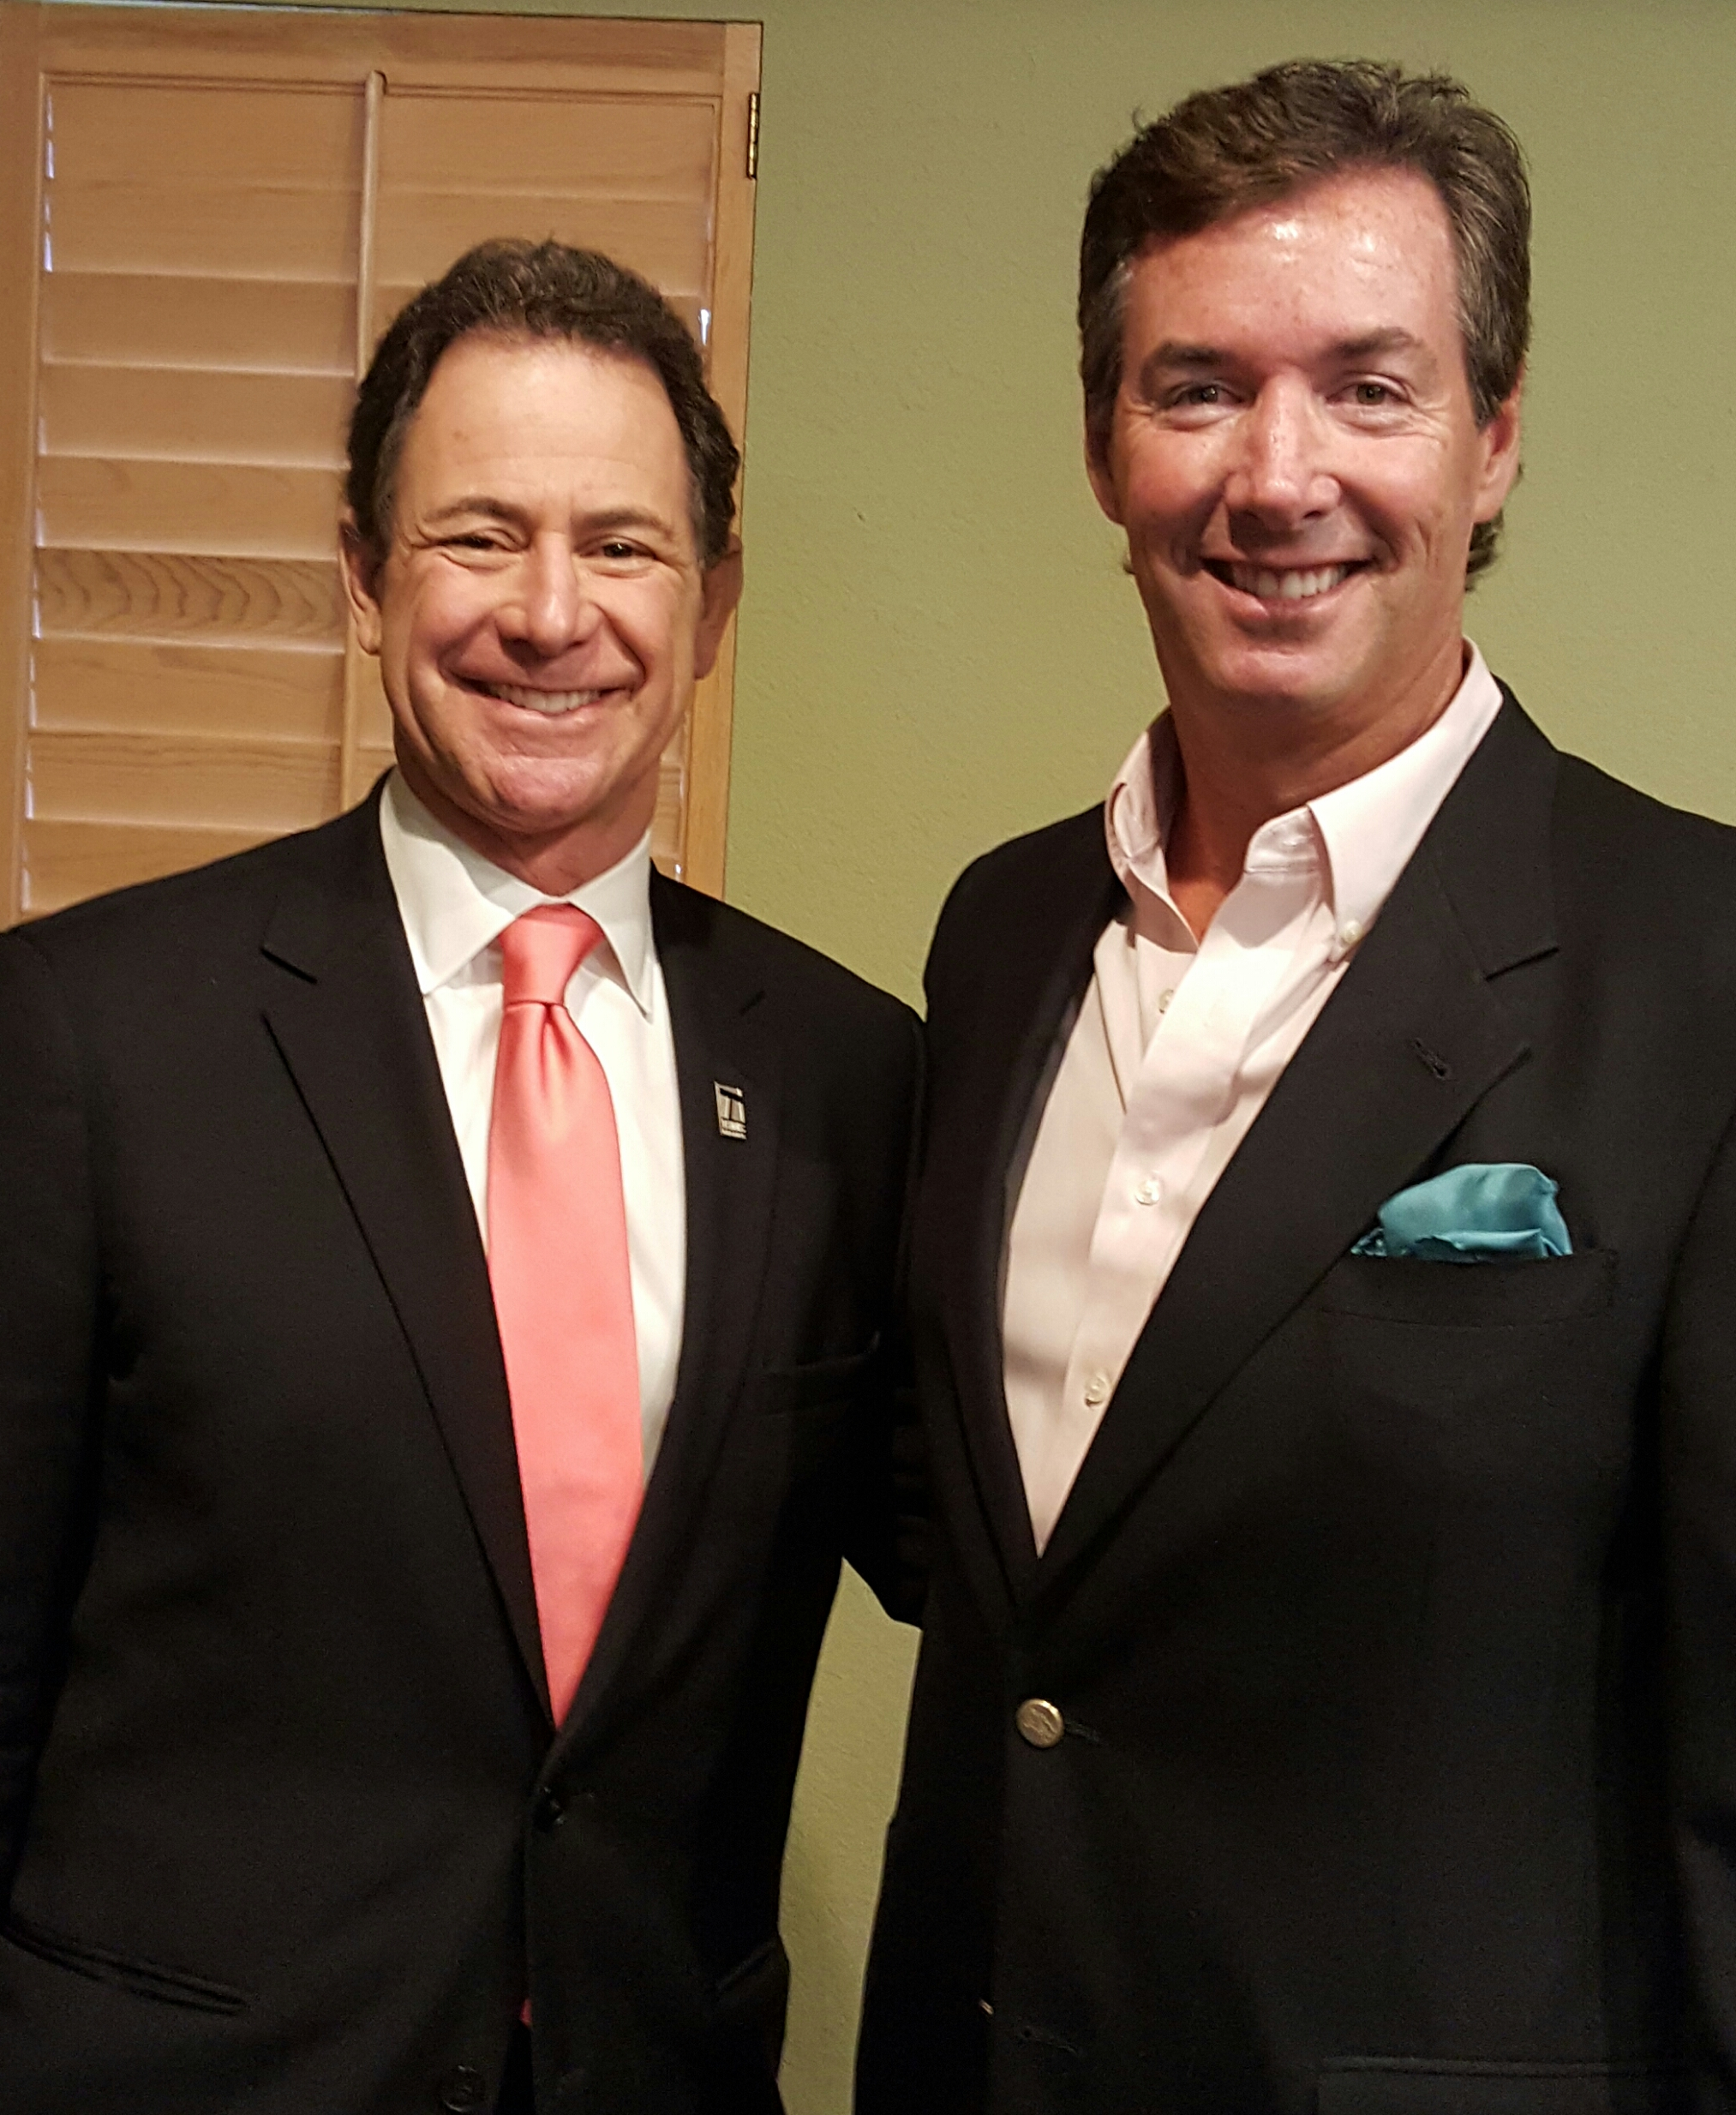 The Tennis Channel Chairman & CEO Ken Solomon and Ray Collins.